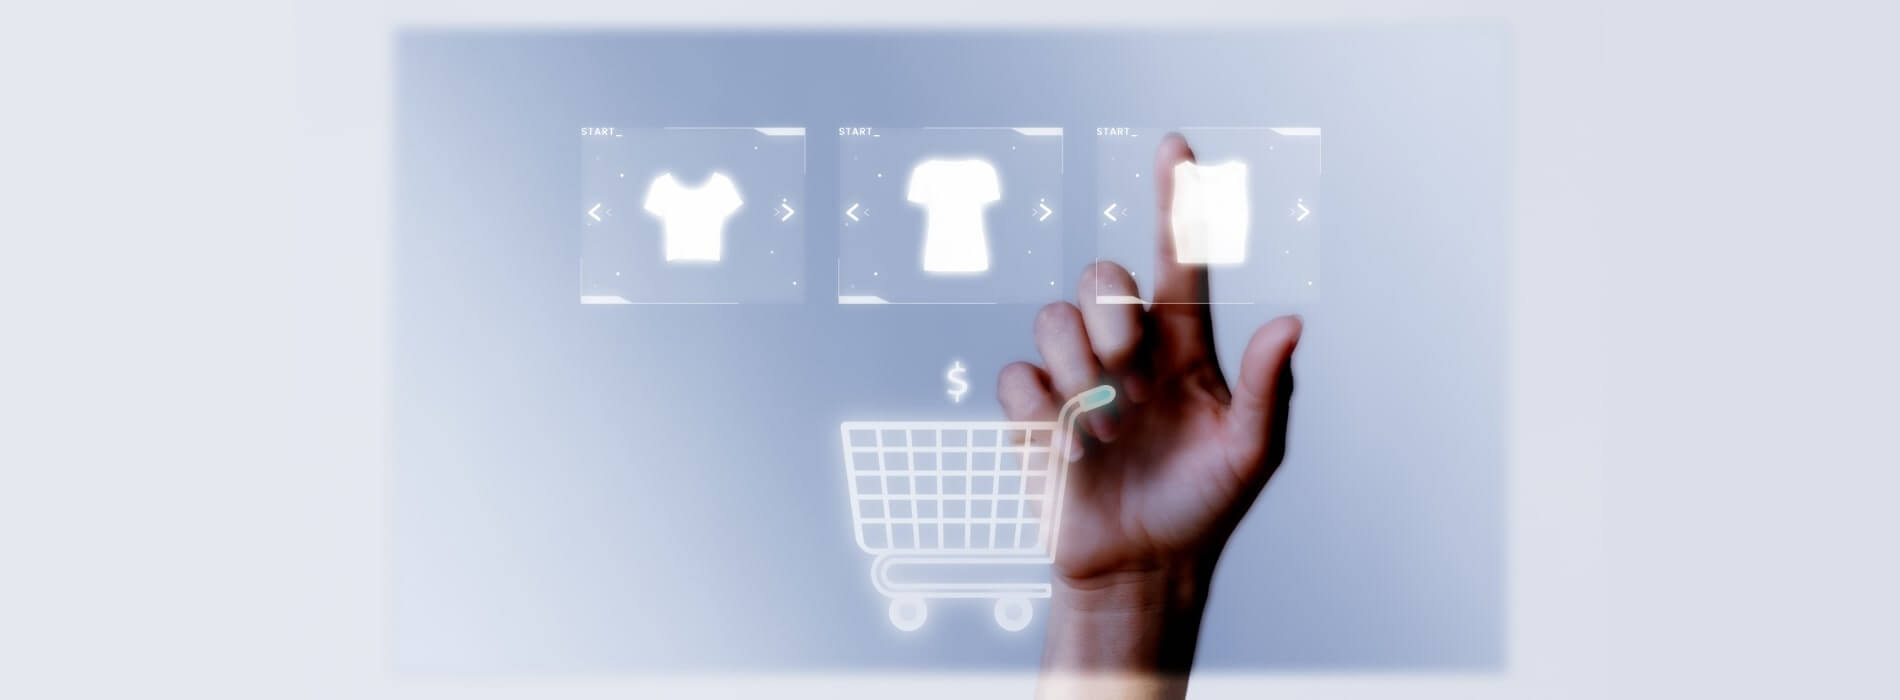 Internet Of Things For Fashion And Retail Industry